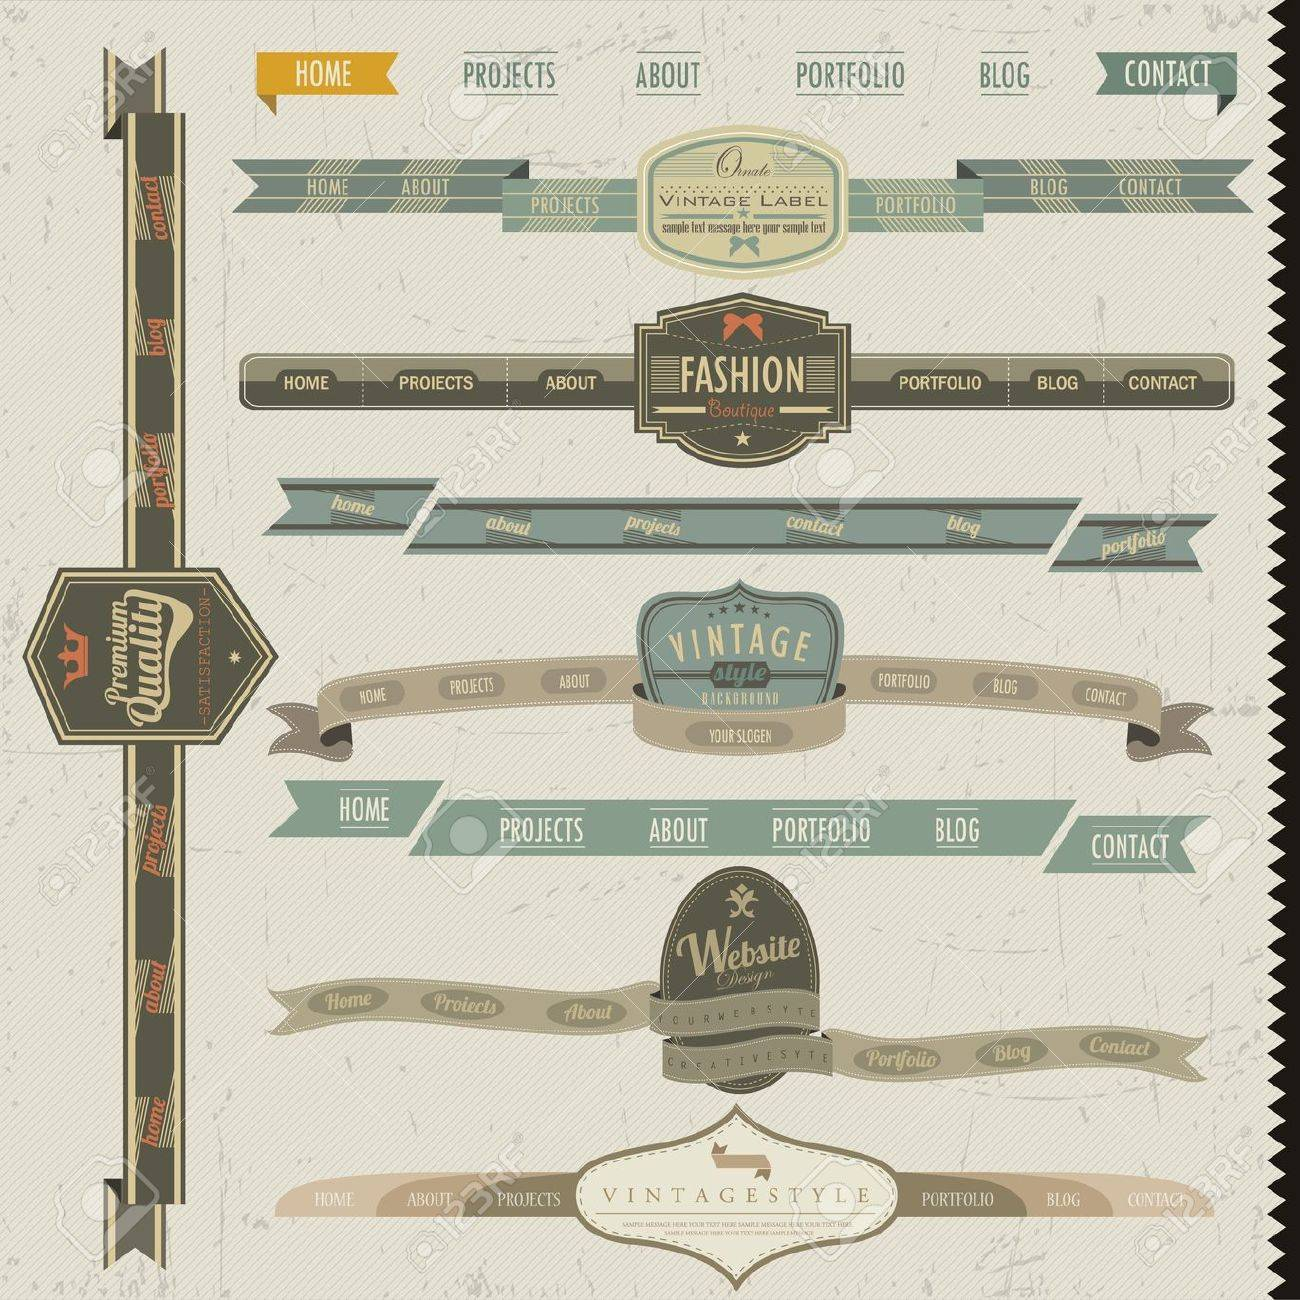 Retro vintage style website headers and navigation elements Stock Vector - 14083697